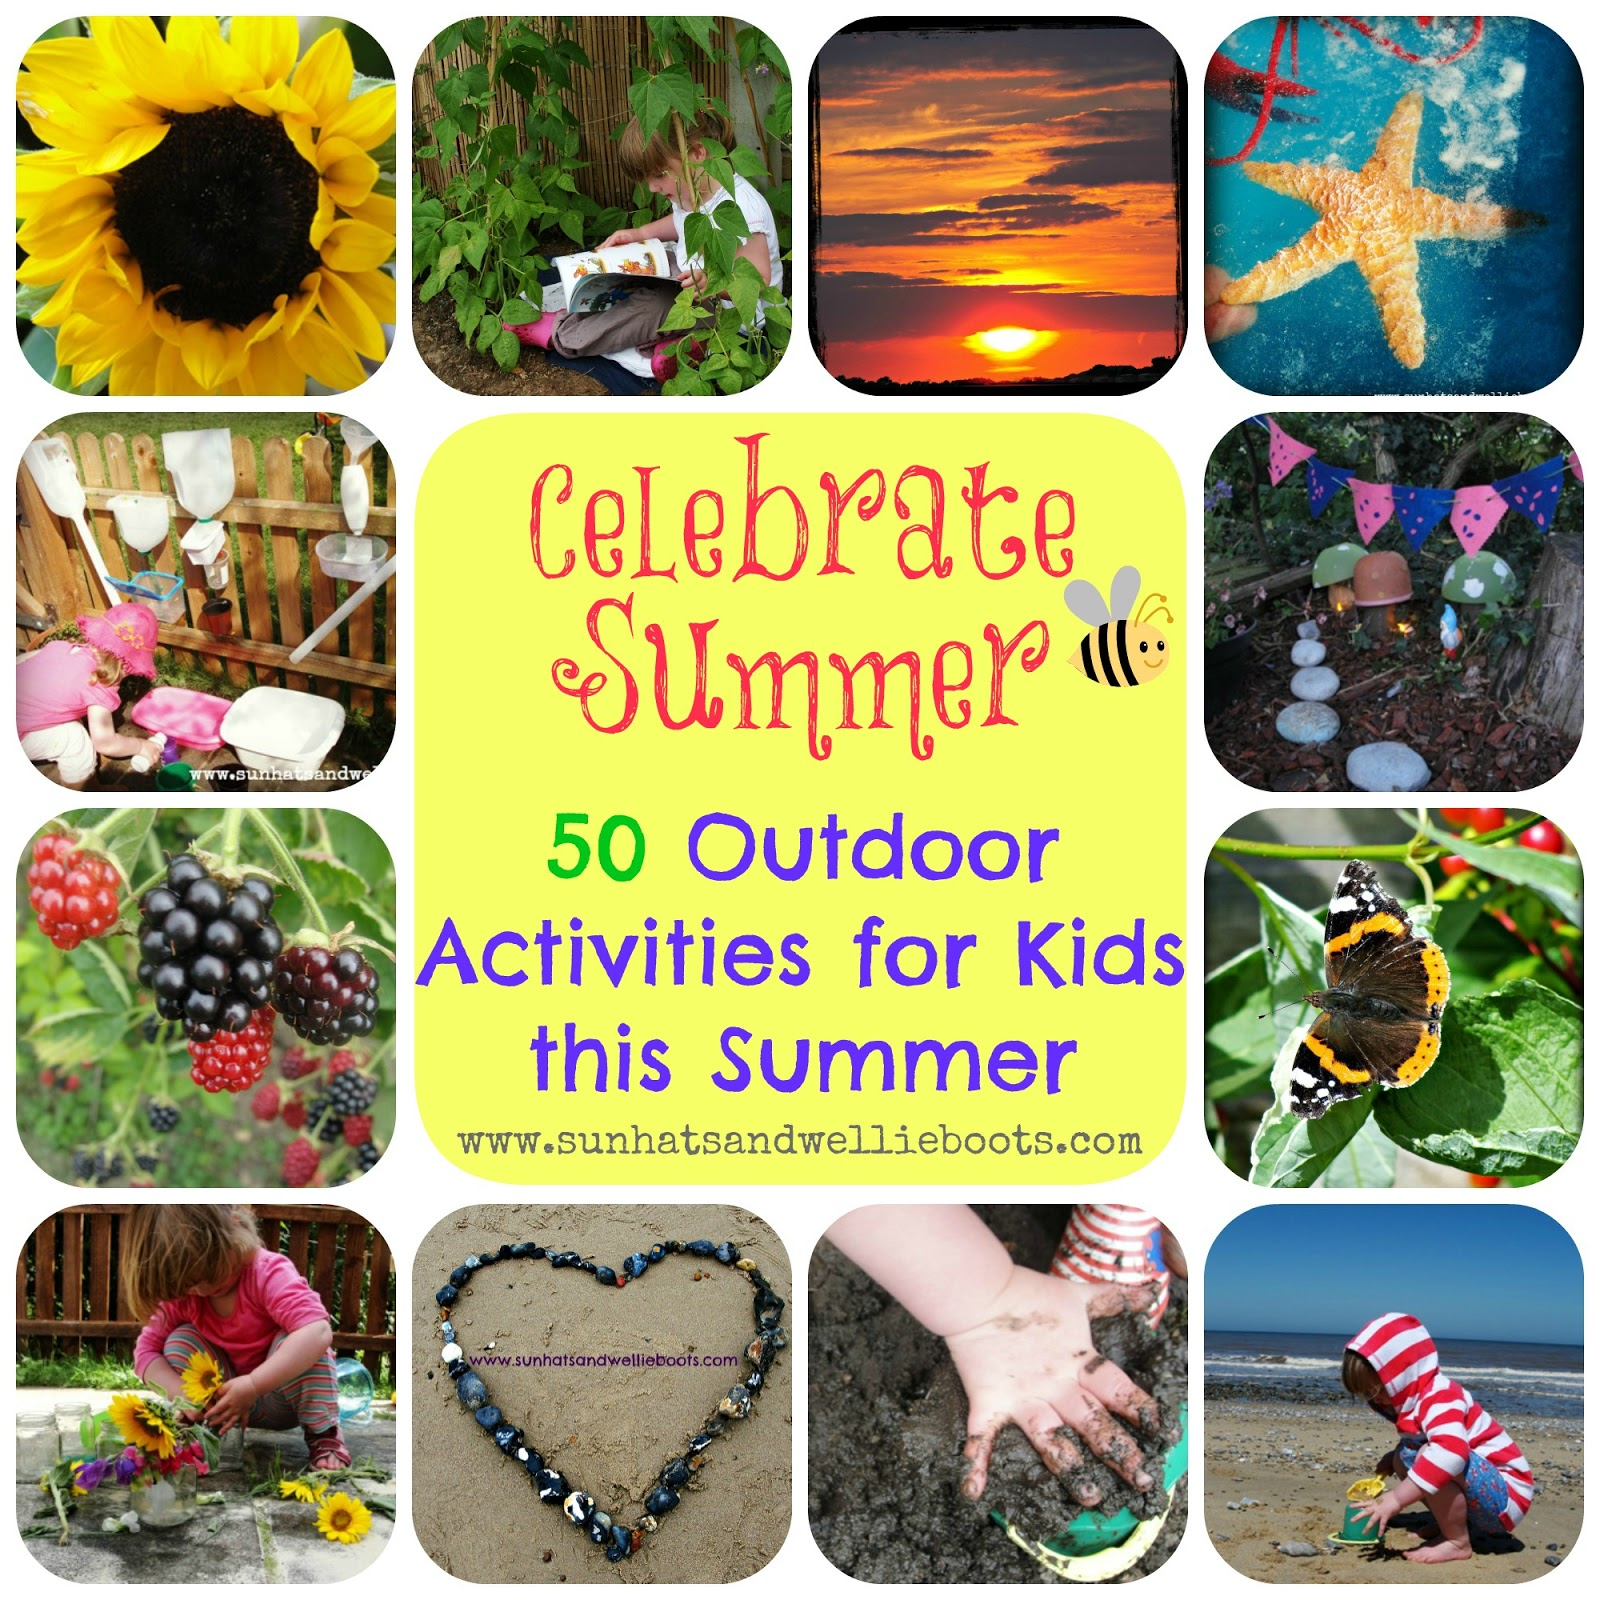 Sun Hats & Wellie Boots 50 Outdoor Activities for Kids this Summer